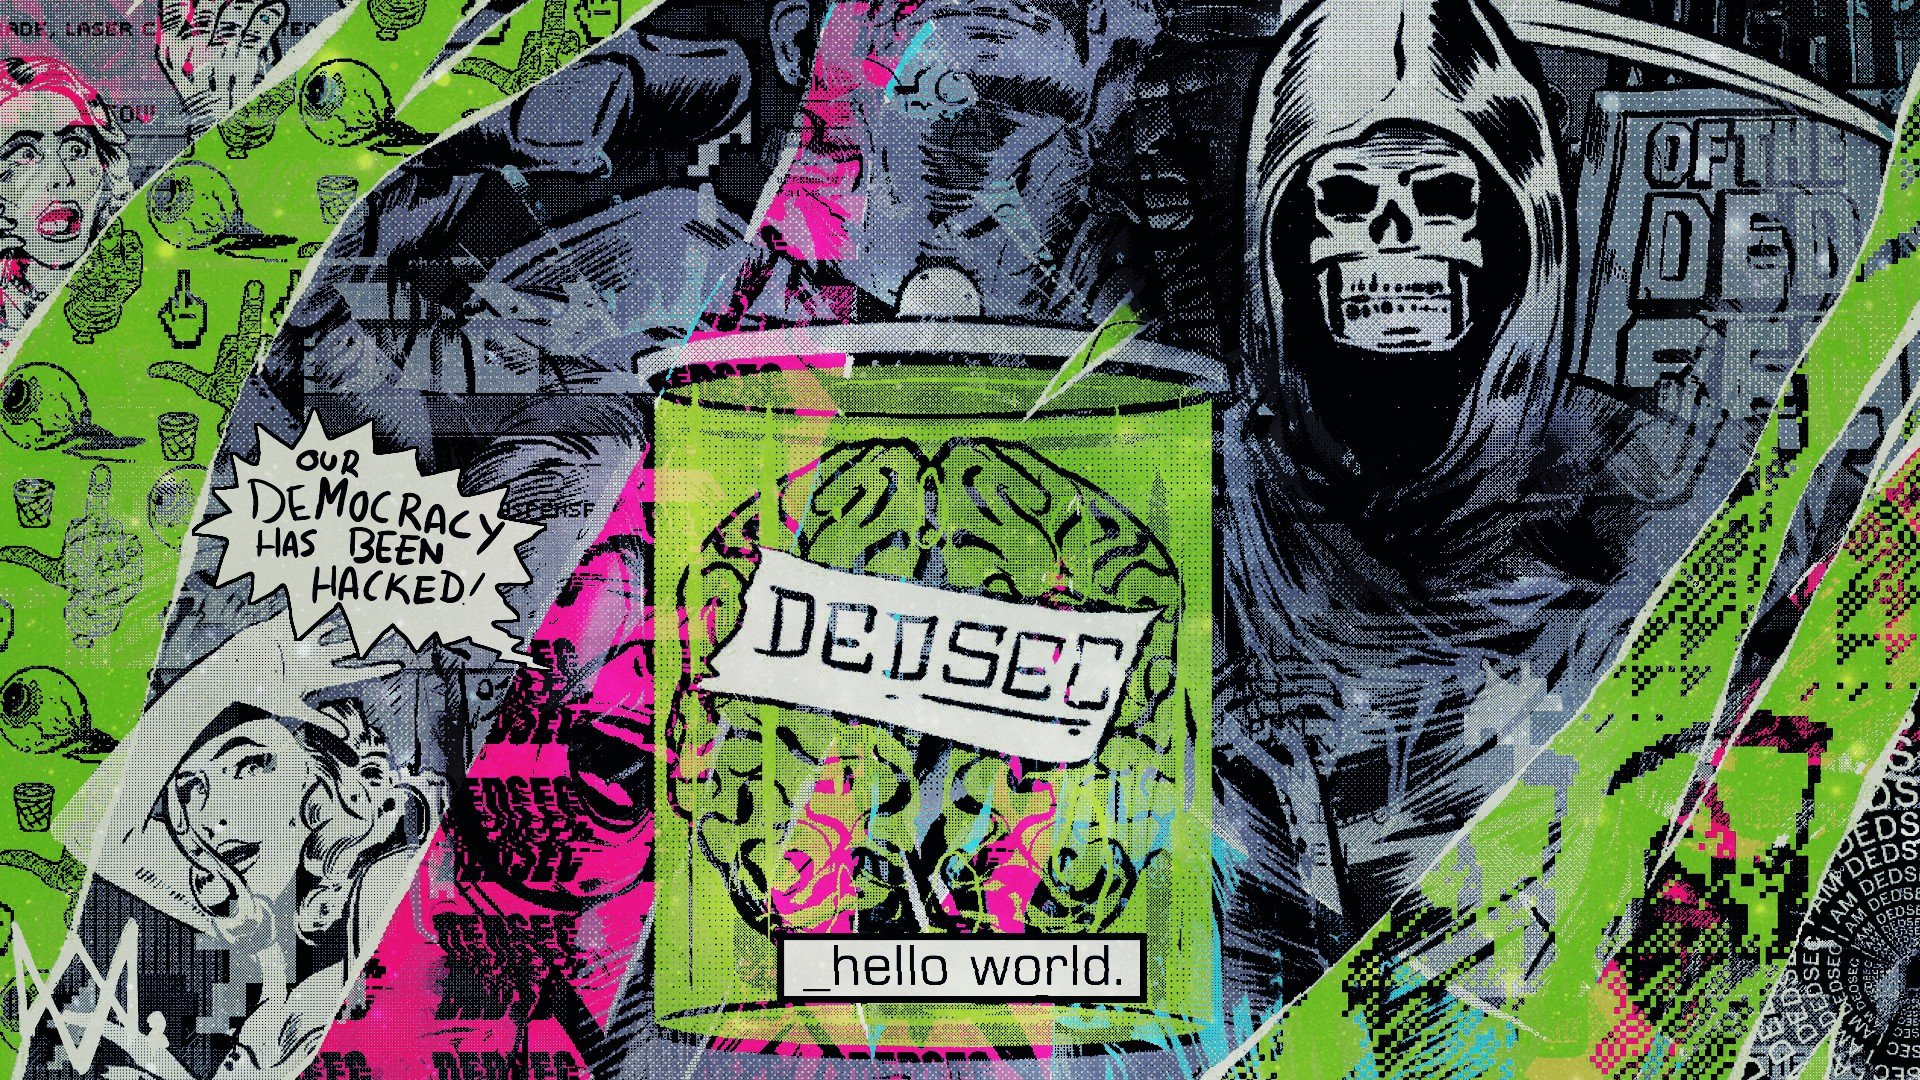 Dedsec Watch Dogs Hacking Democracy Hello World Watch Dogs 2